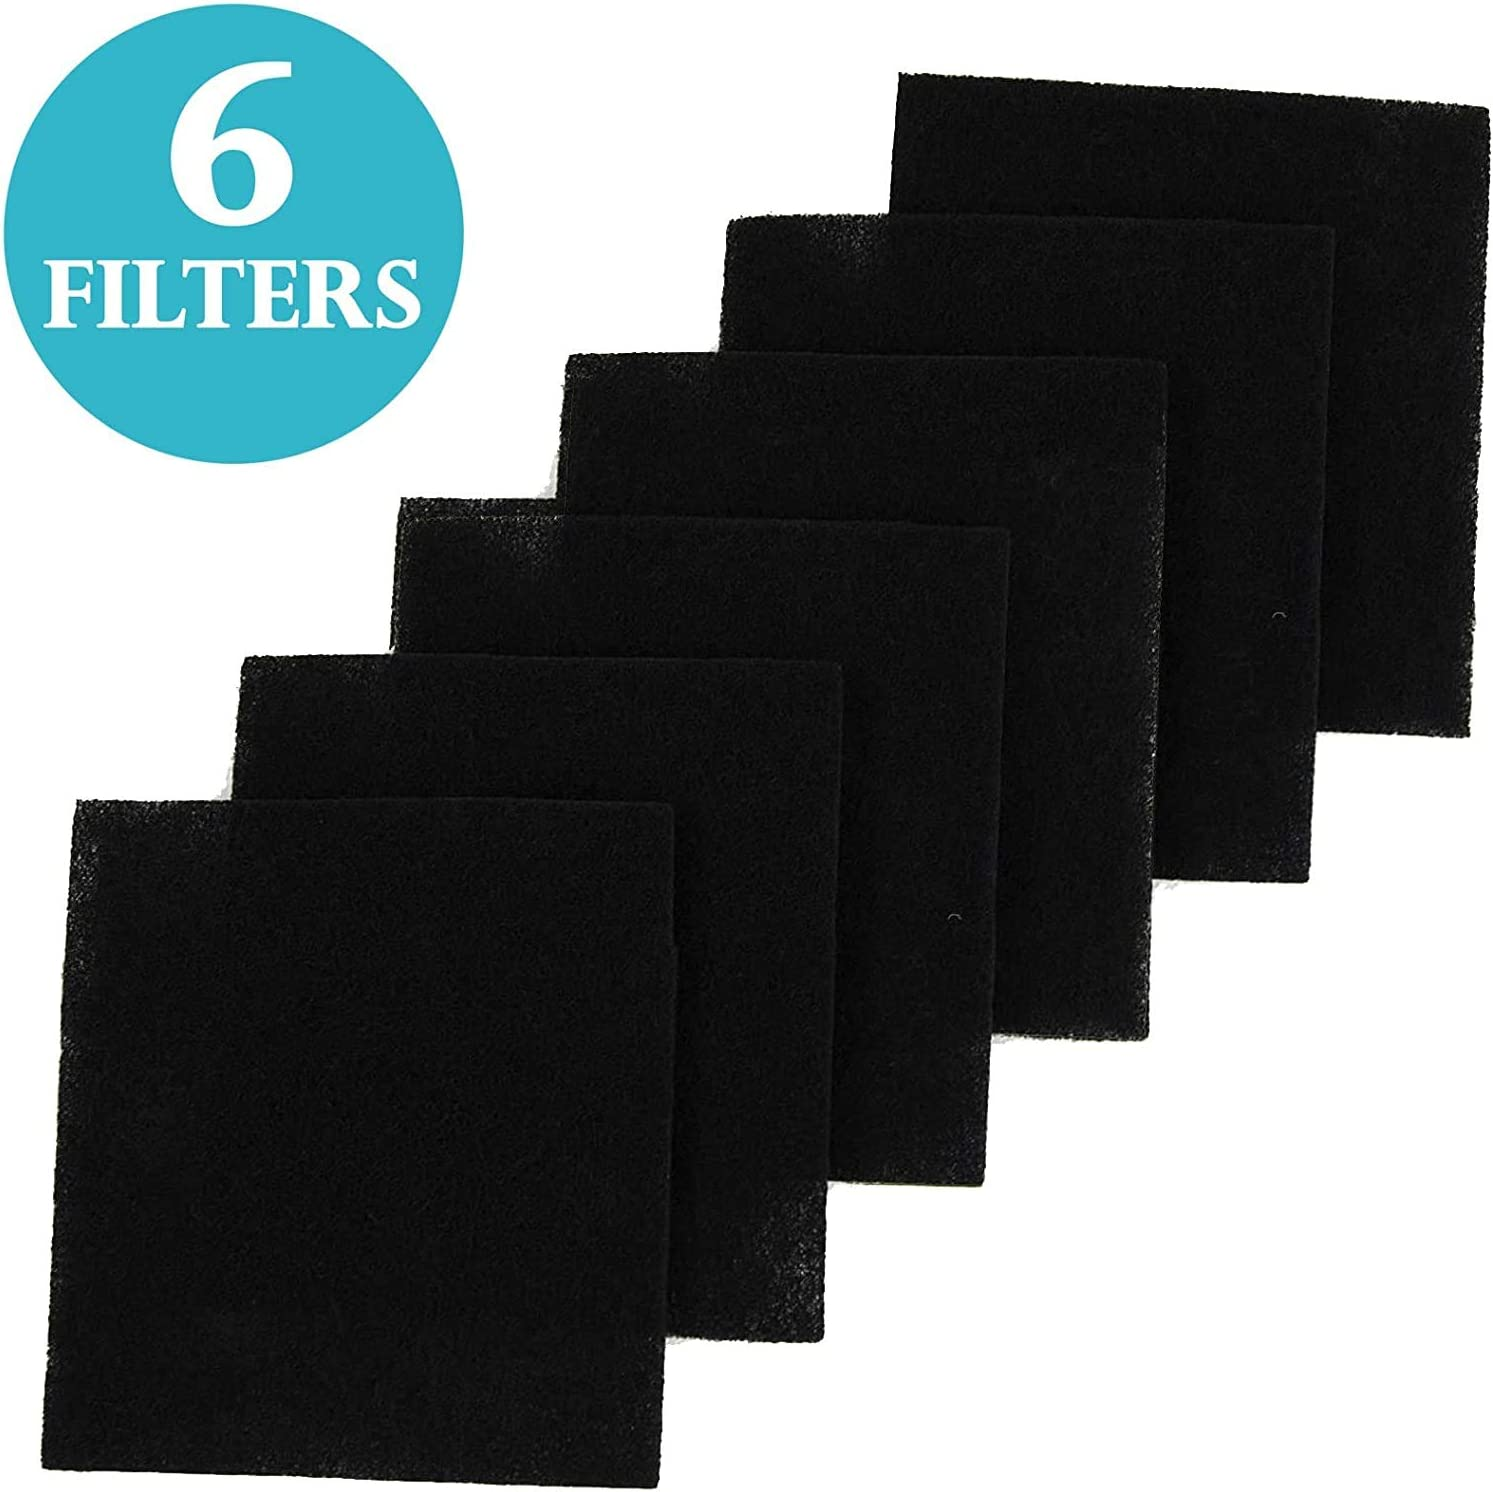 FRESH HEADQUARTERS Litter Box Filters for Hooded Cat Litter Box – Activated Charcoal Filters Eliminate up to 99% of Litter Box Odors – 6 Inch x 6.5 Inch Trimmable Pads (6 Pack)